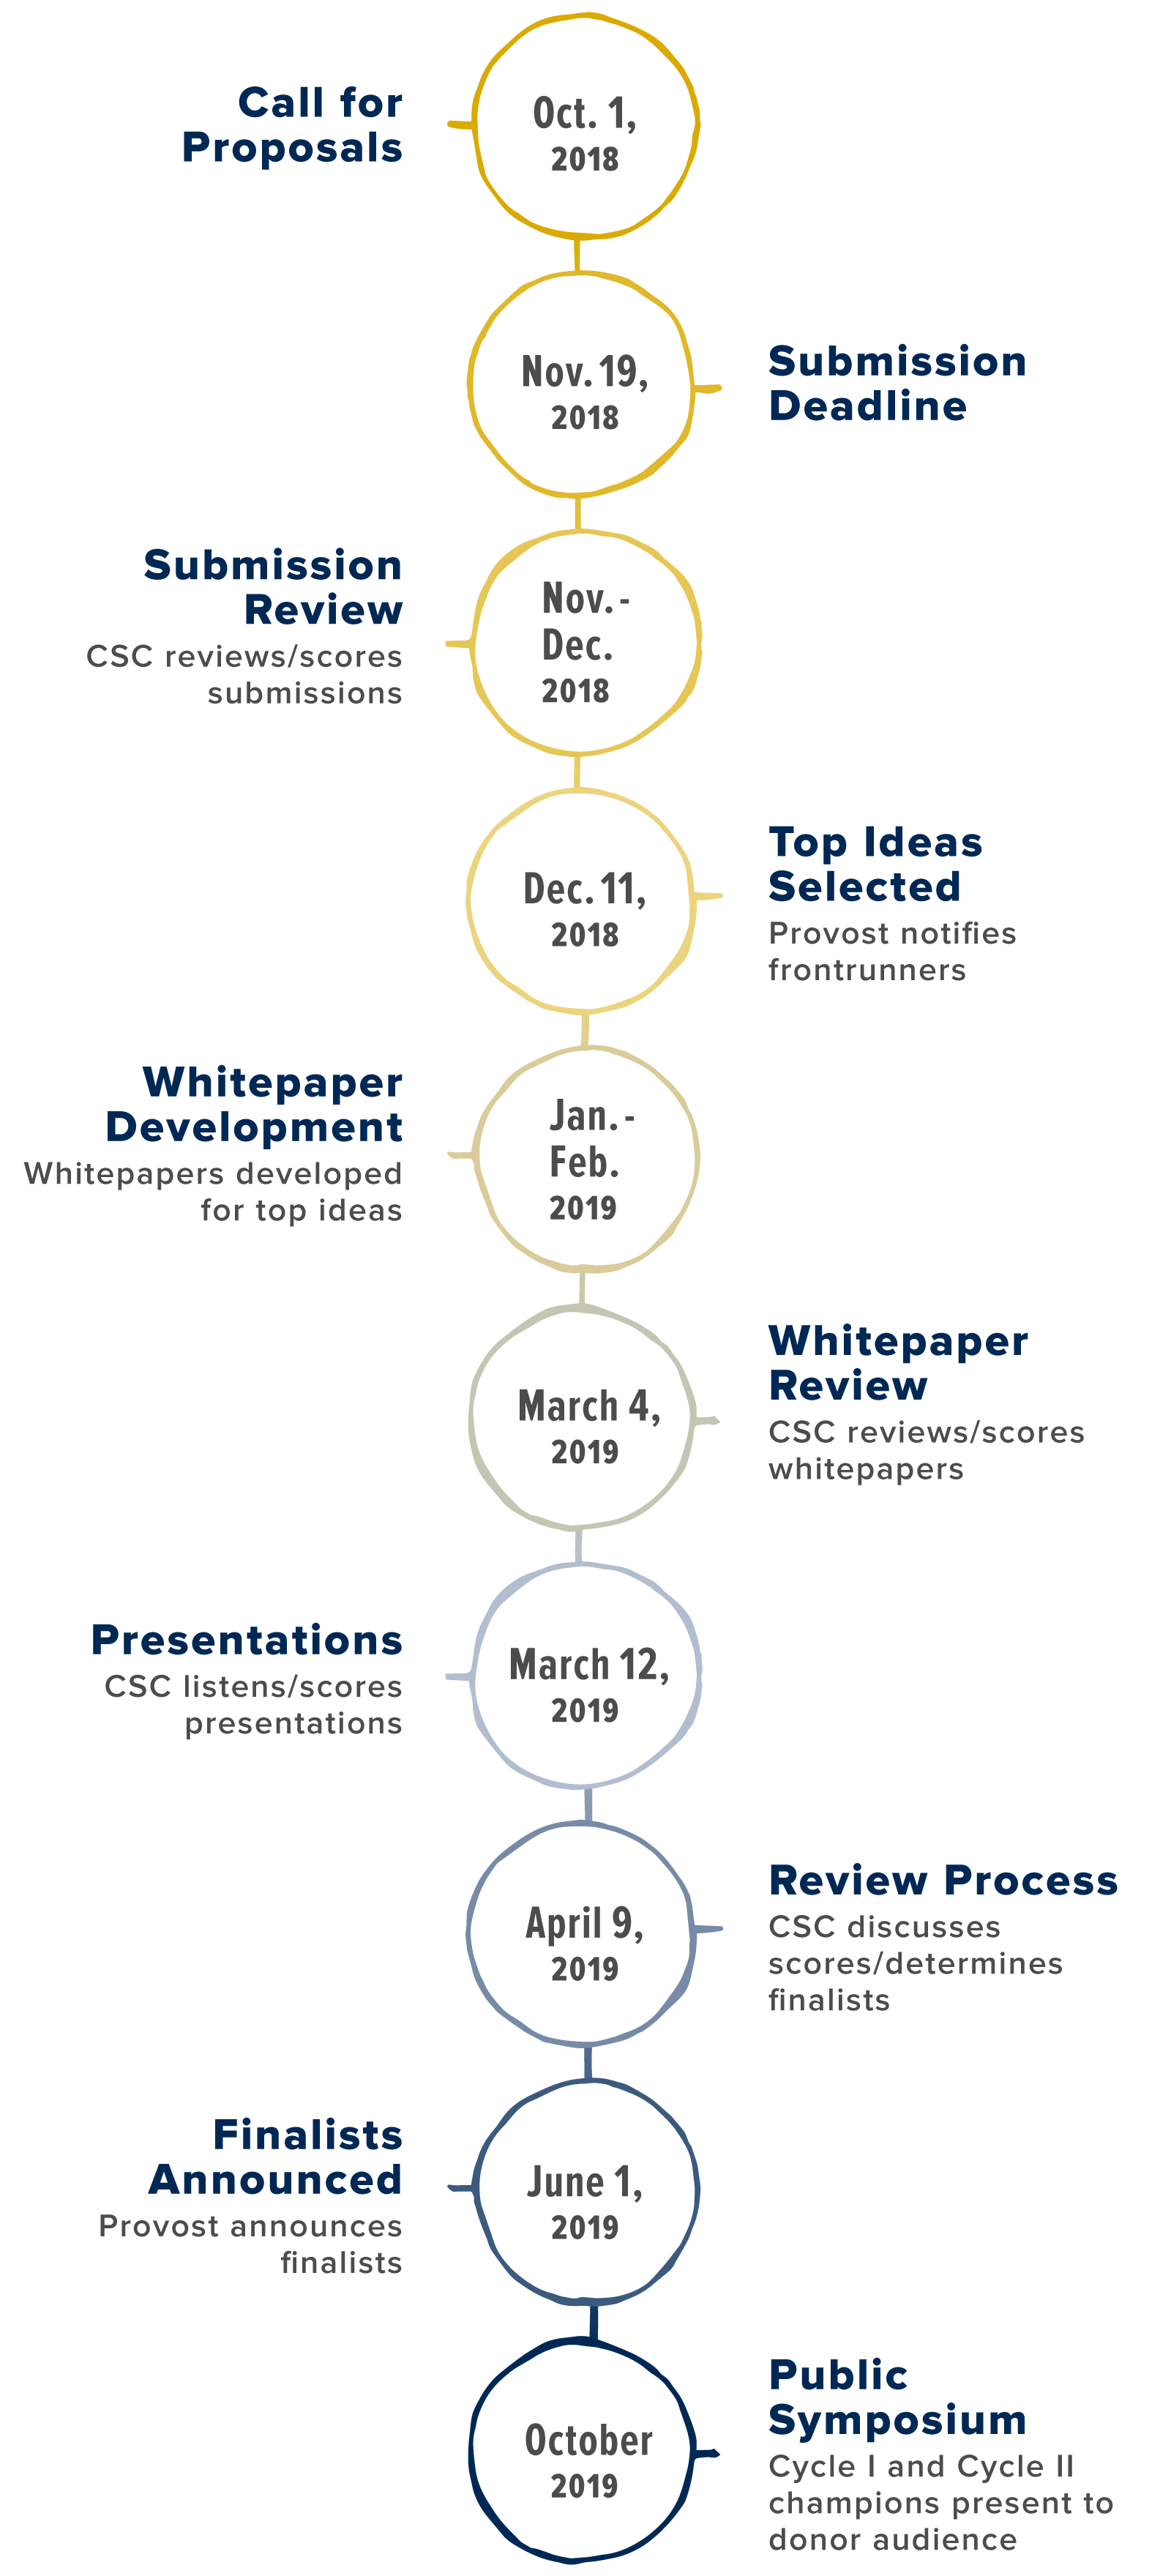 Call for Ideas cycle 2 timeline